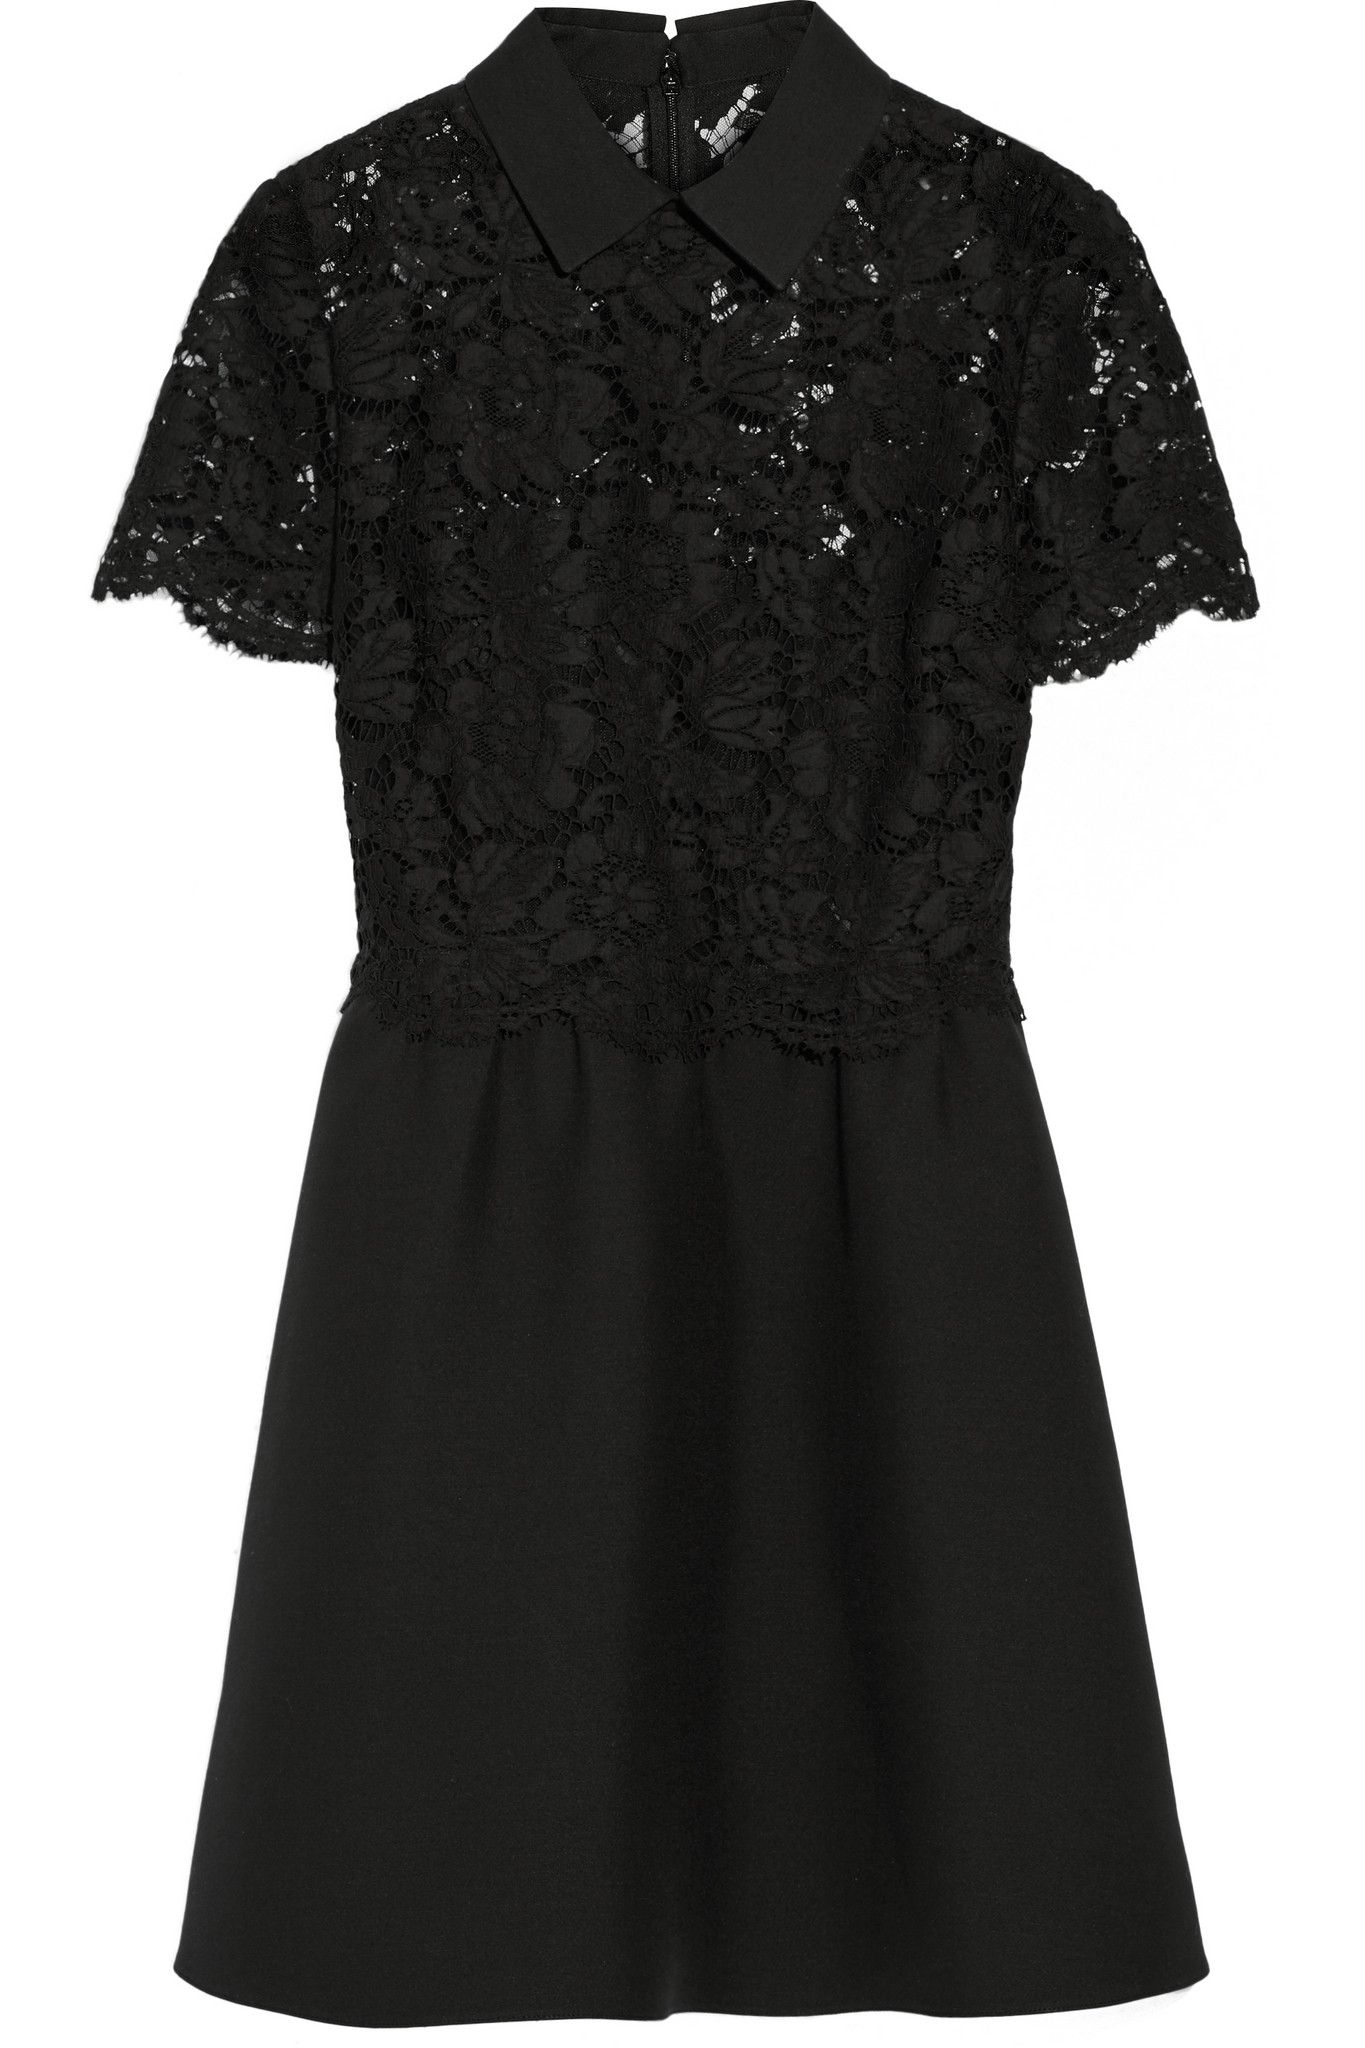 Valentino Woman Tulle-paneled Beaded Wool And Silk-blend Mini Dress Black Size 42 Valentino Genuine Cheap Price AAvIQhNaGT